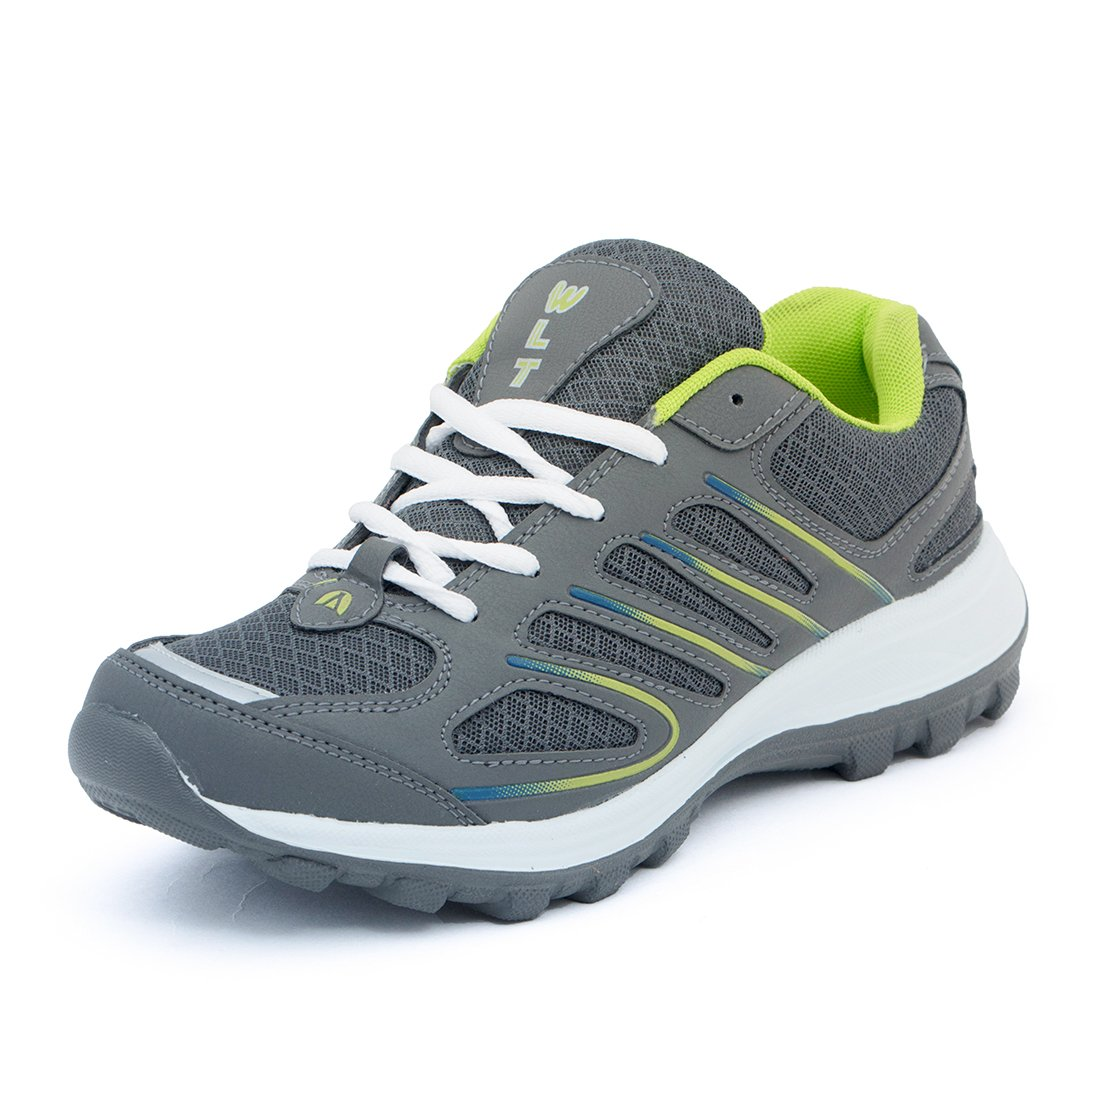 Goldstar running shoes under 1000 for men